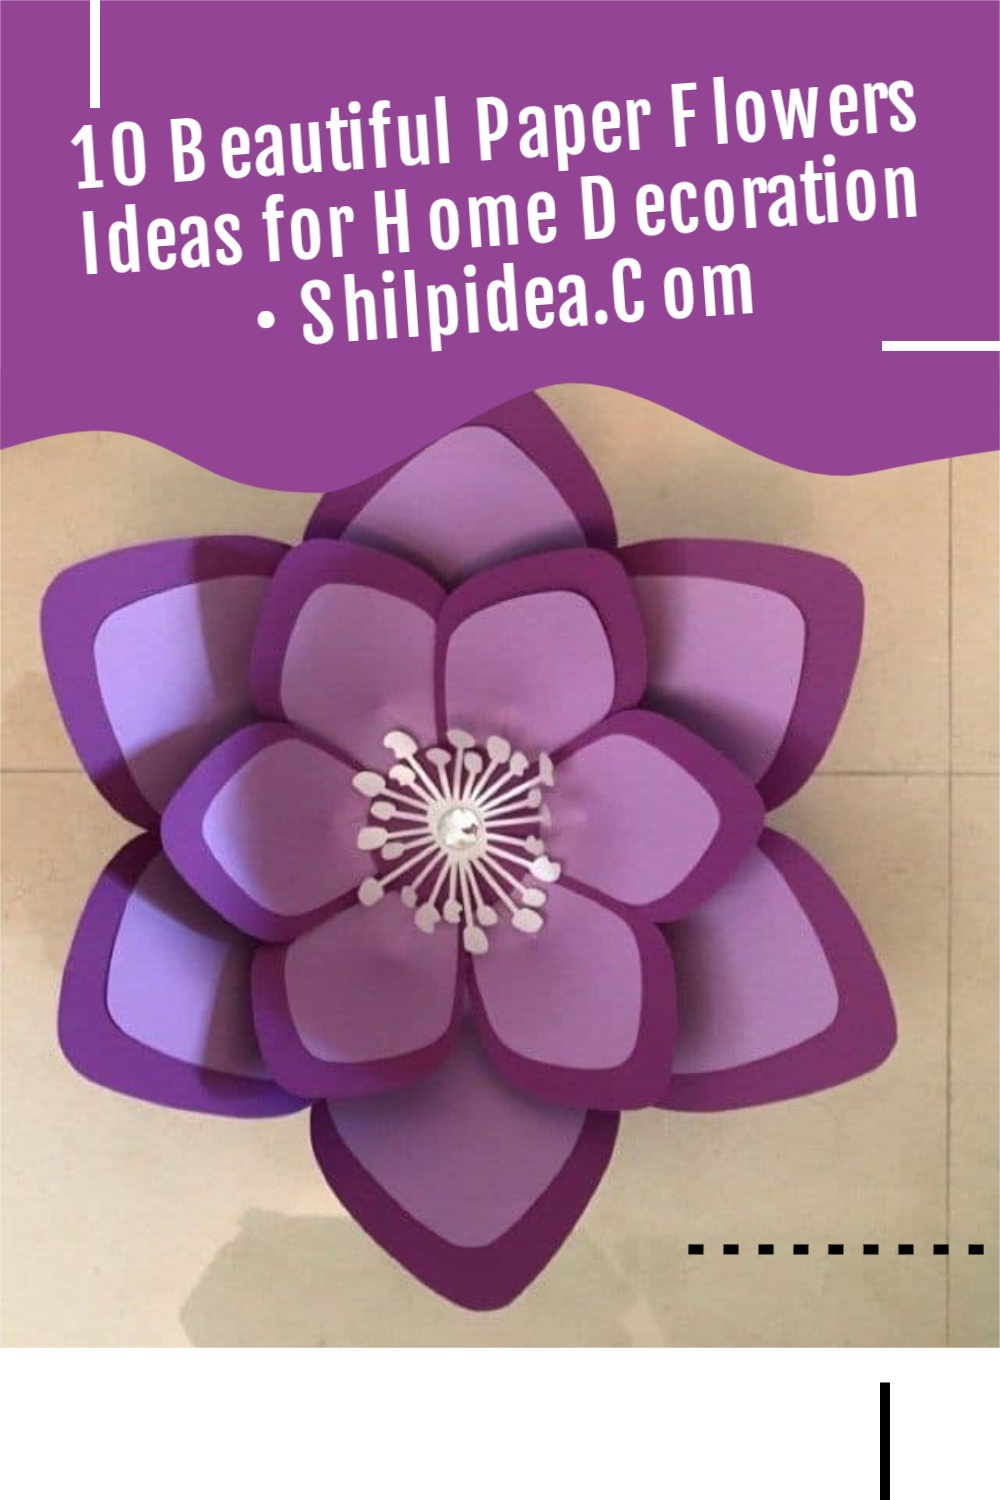 paper-flower-for-home-decor-shilpidea-pin